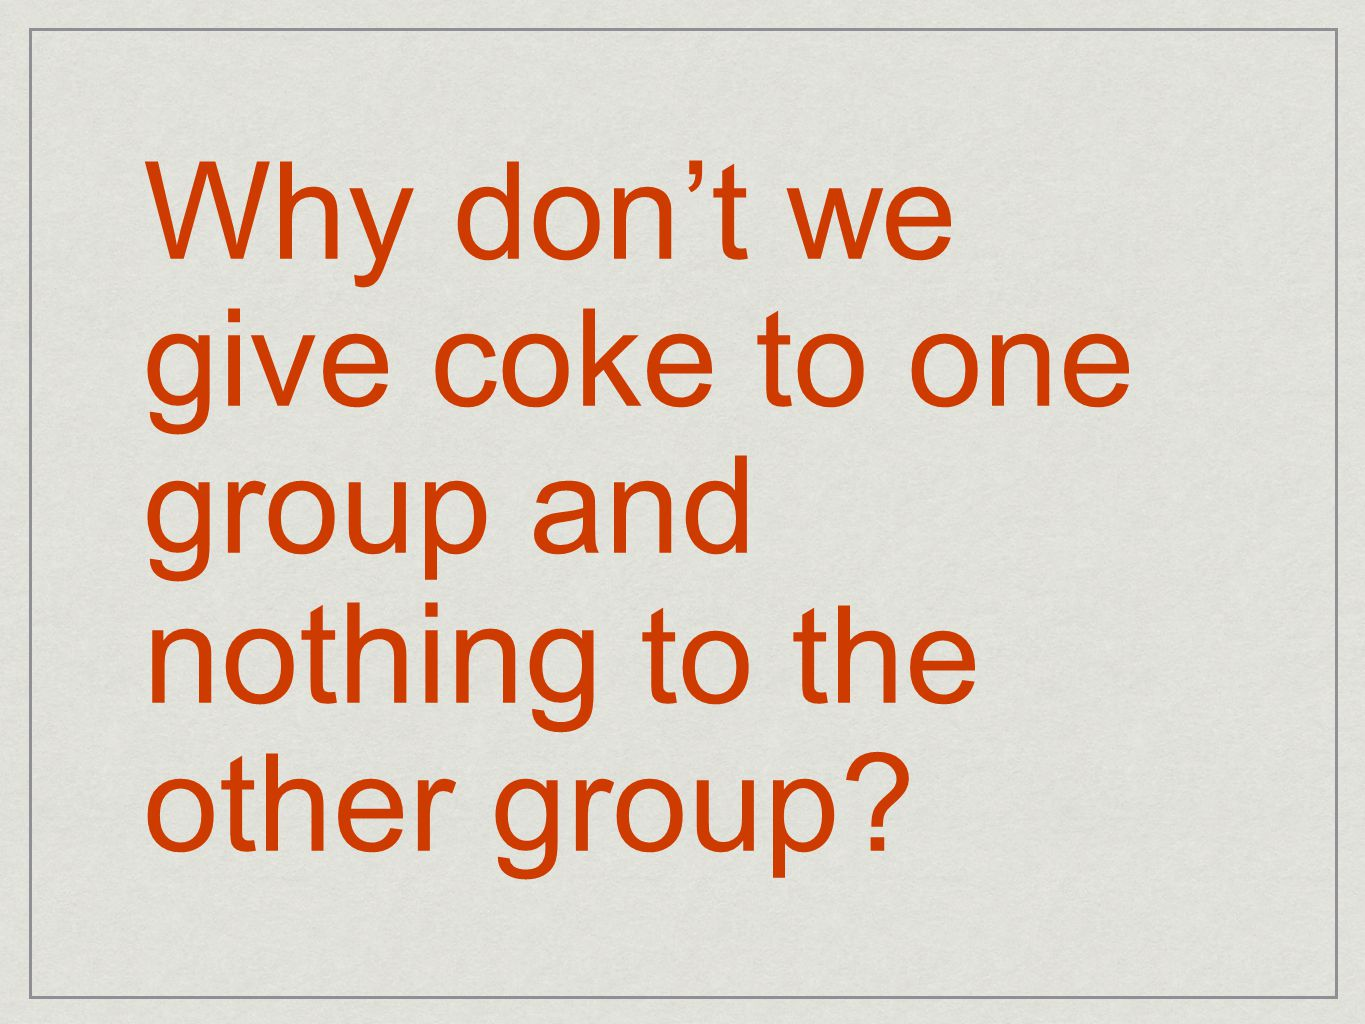 Why don't we give coke to one group and nothing to the other group?